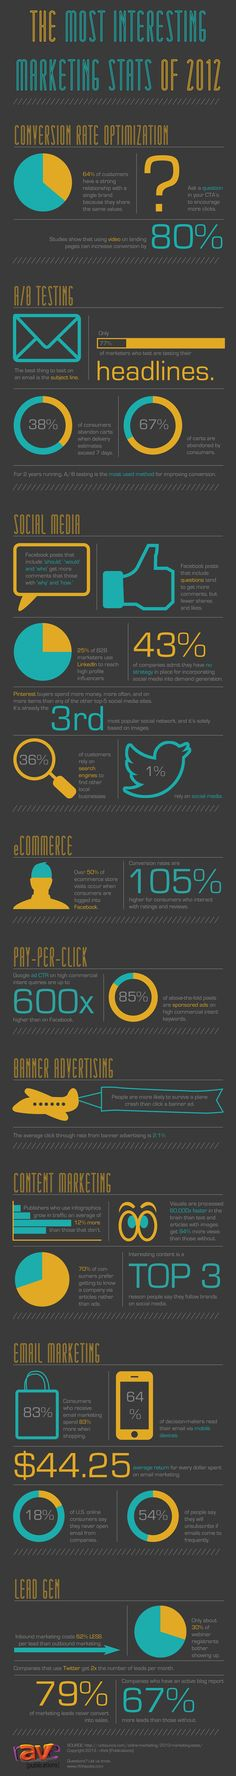 The Most Interesting #Marketing Stats of 2012